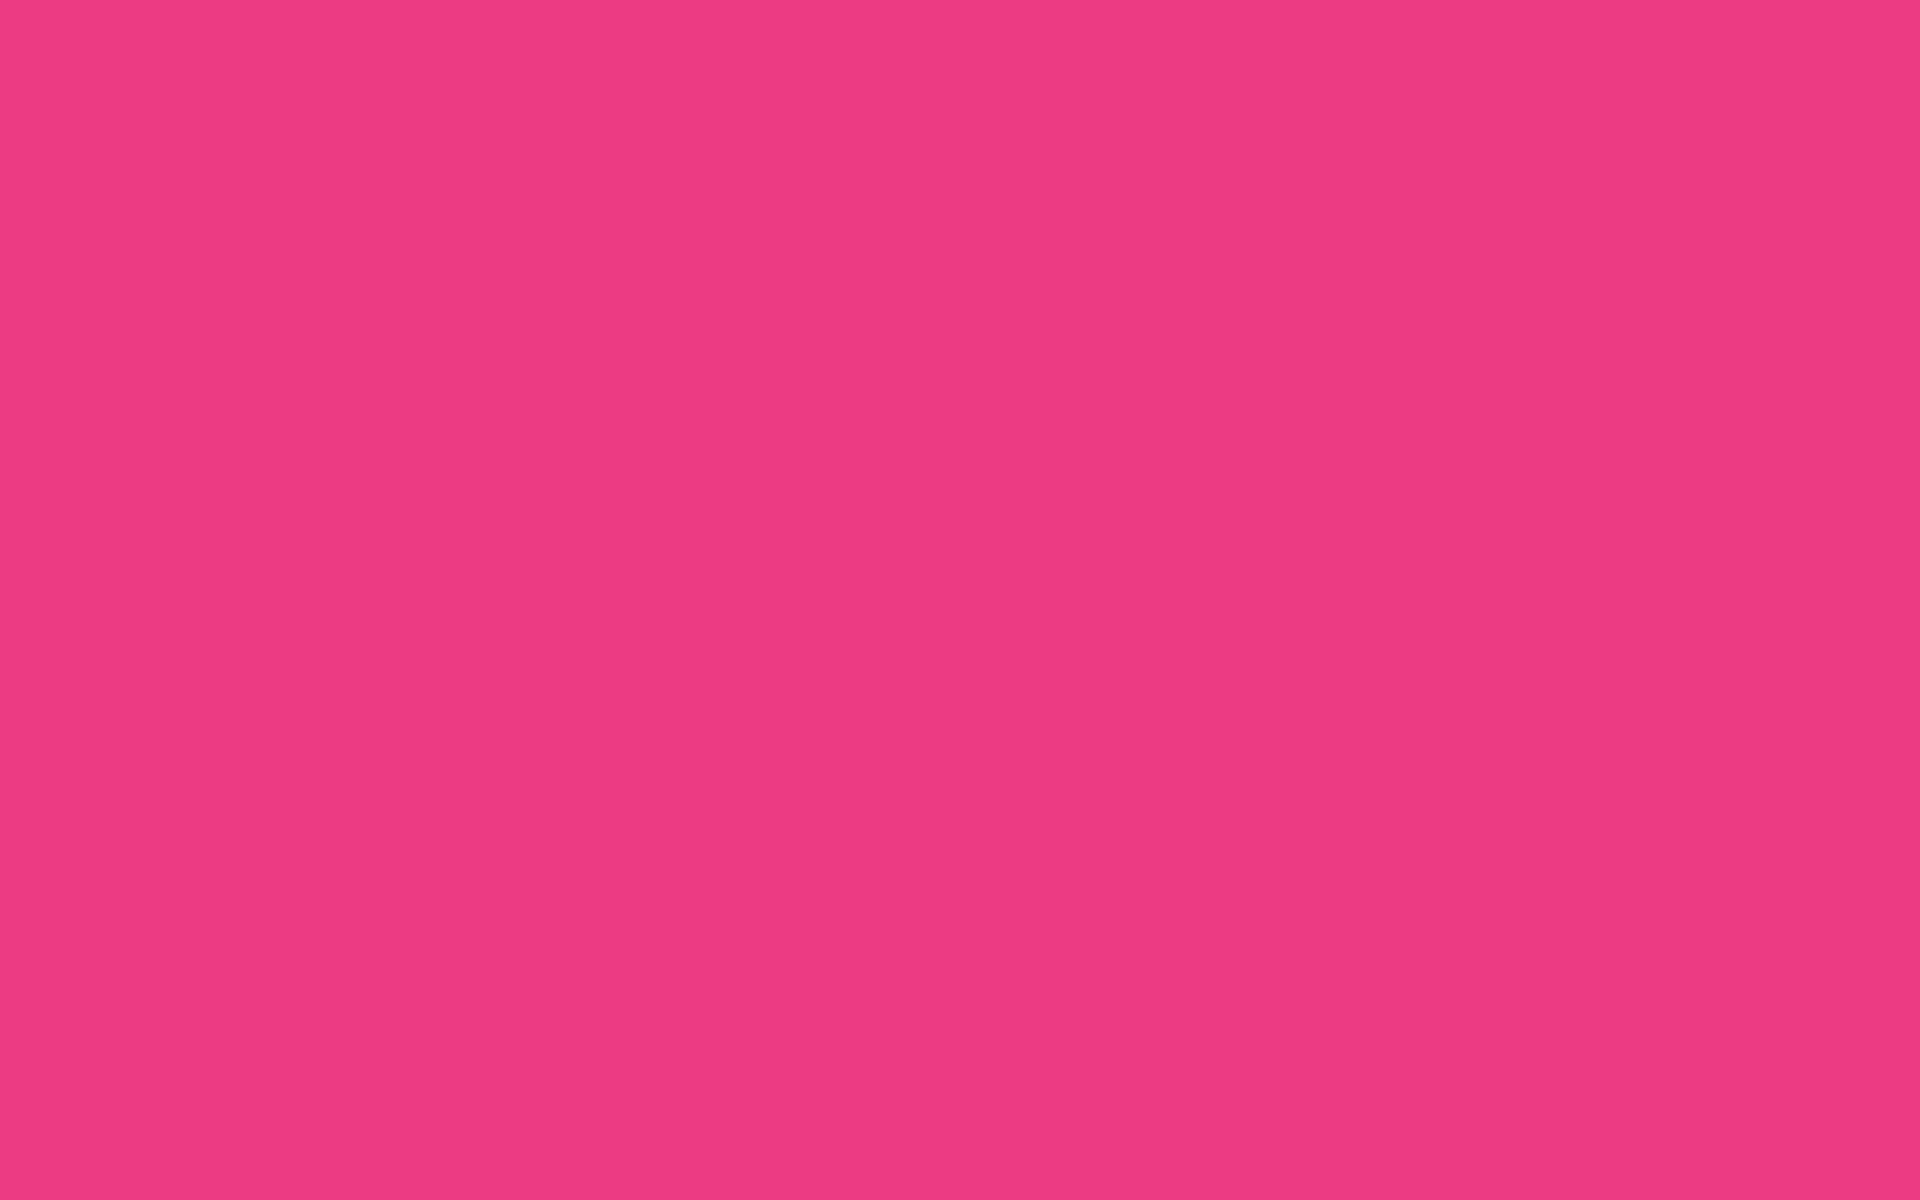 1920x1200 Cerise Pink Solid Color Background